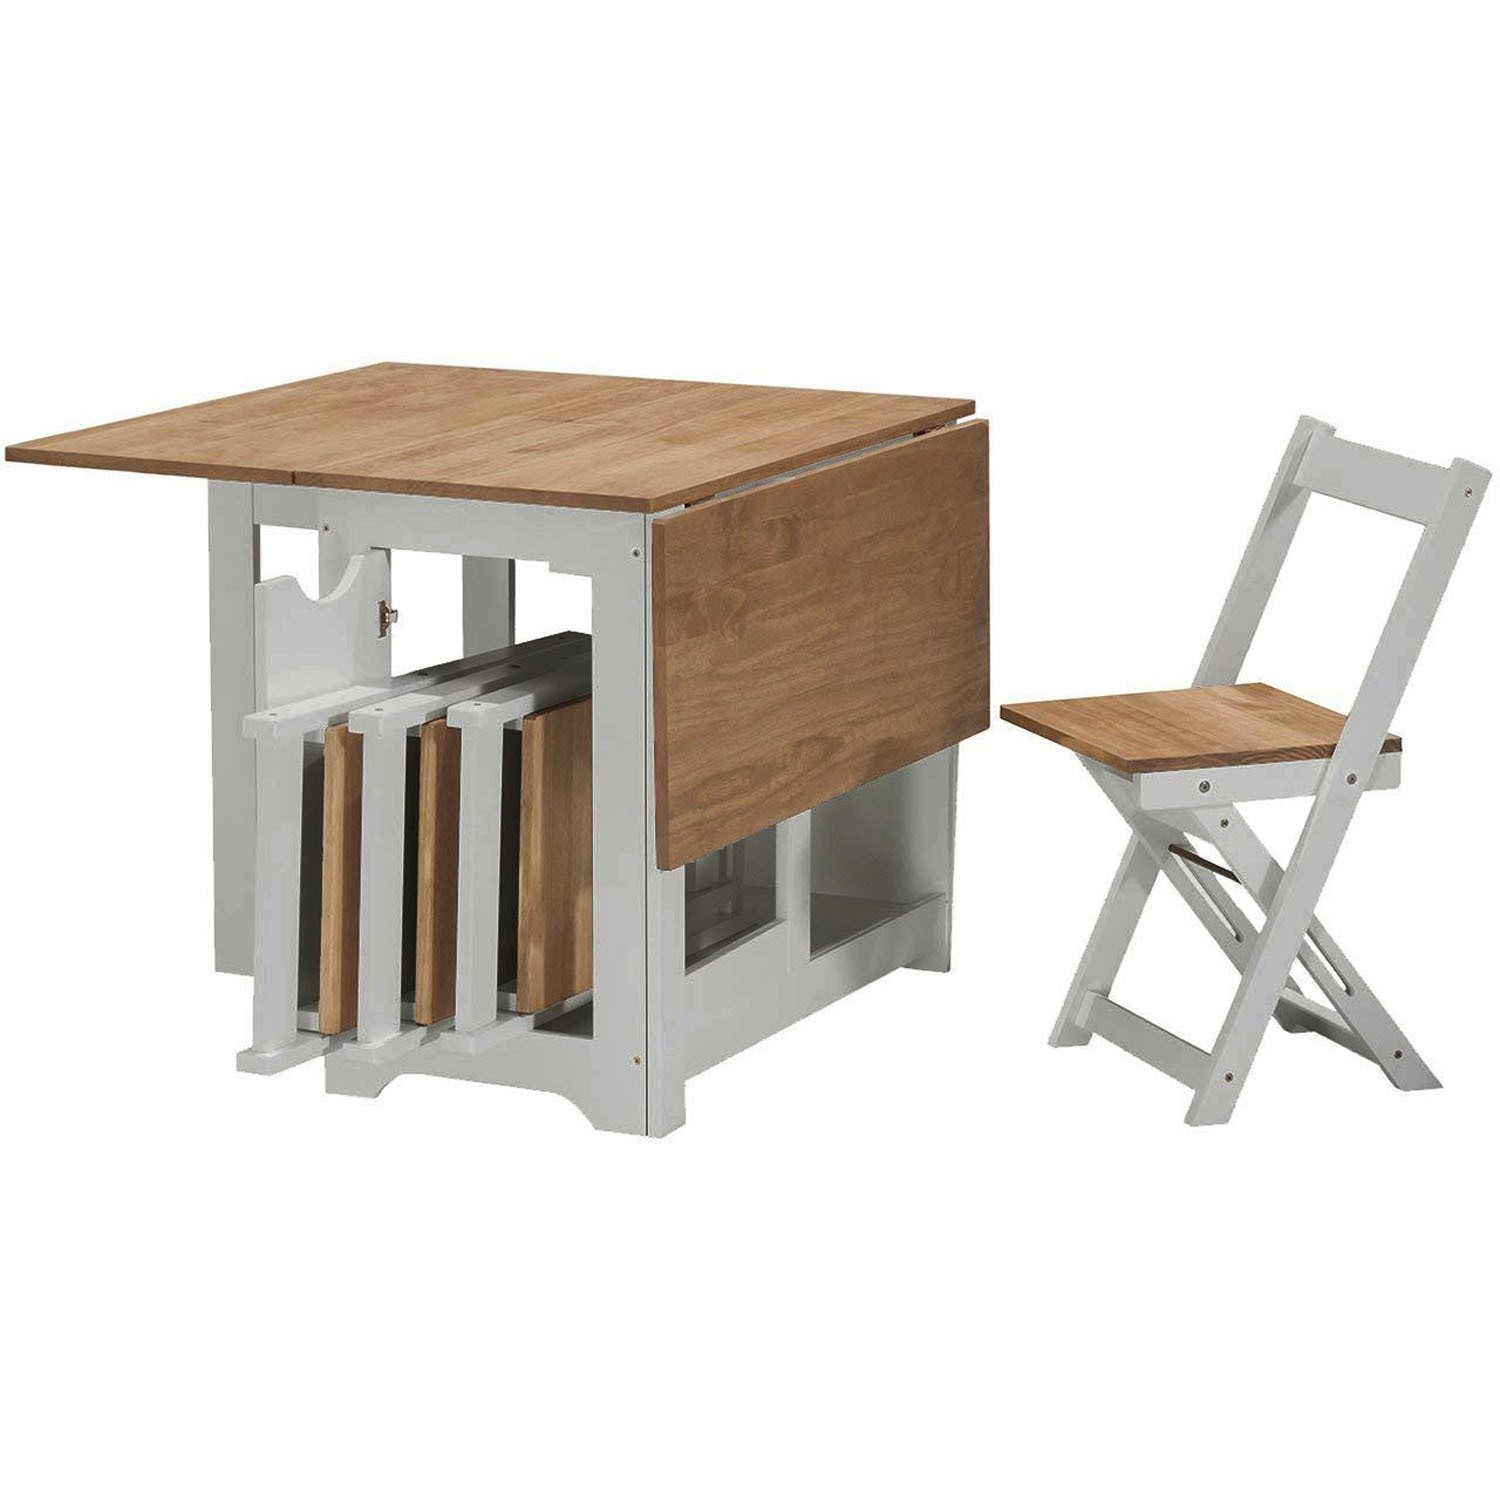 Seconique Santos Butterfly Folding Dining Set In Grey Pine With 4 Dining Chairs Furniture123